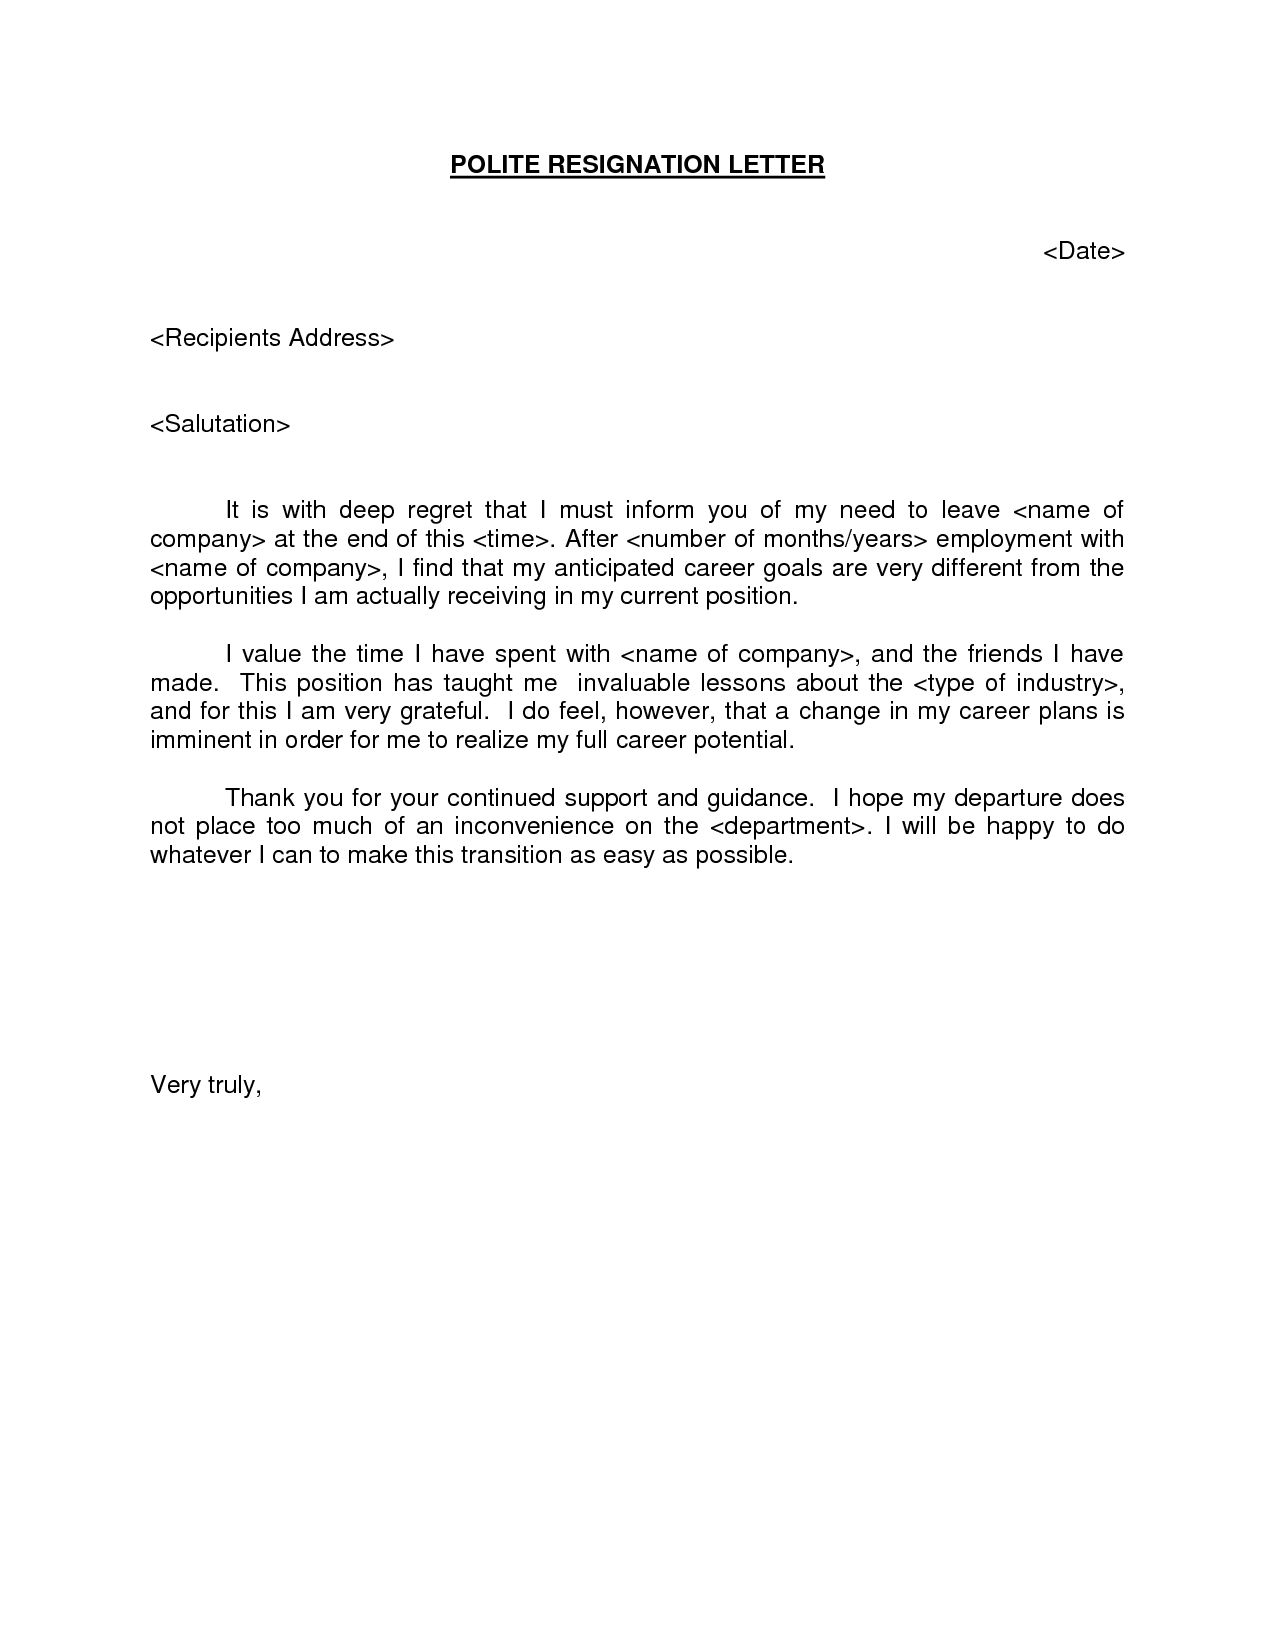 official letter of resignation template example-POLITE RESIGNATION LETTER BestdealformoneyWriting A Letter Resignation Email Letter Sample 14-m